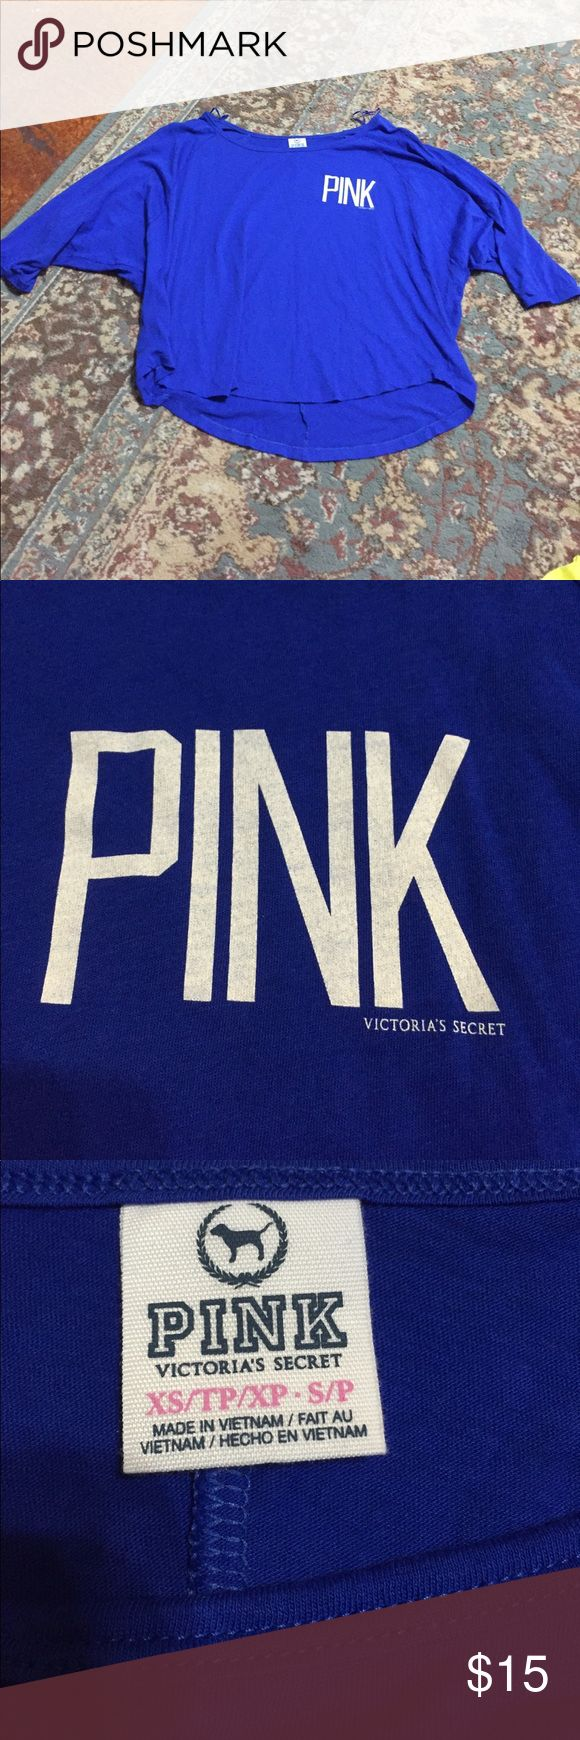 VS PINK blue slouchy loose top Like new condition :) royal blue color with white pink logo on it. The sleeves are loose at the base but then tighter on your arm-they go to slightly above elbow length. PINK Victoria's Secret Tops Tees - Short Sleeve